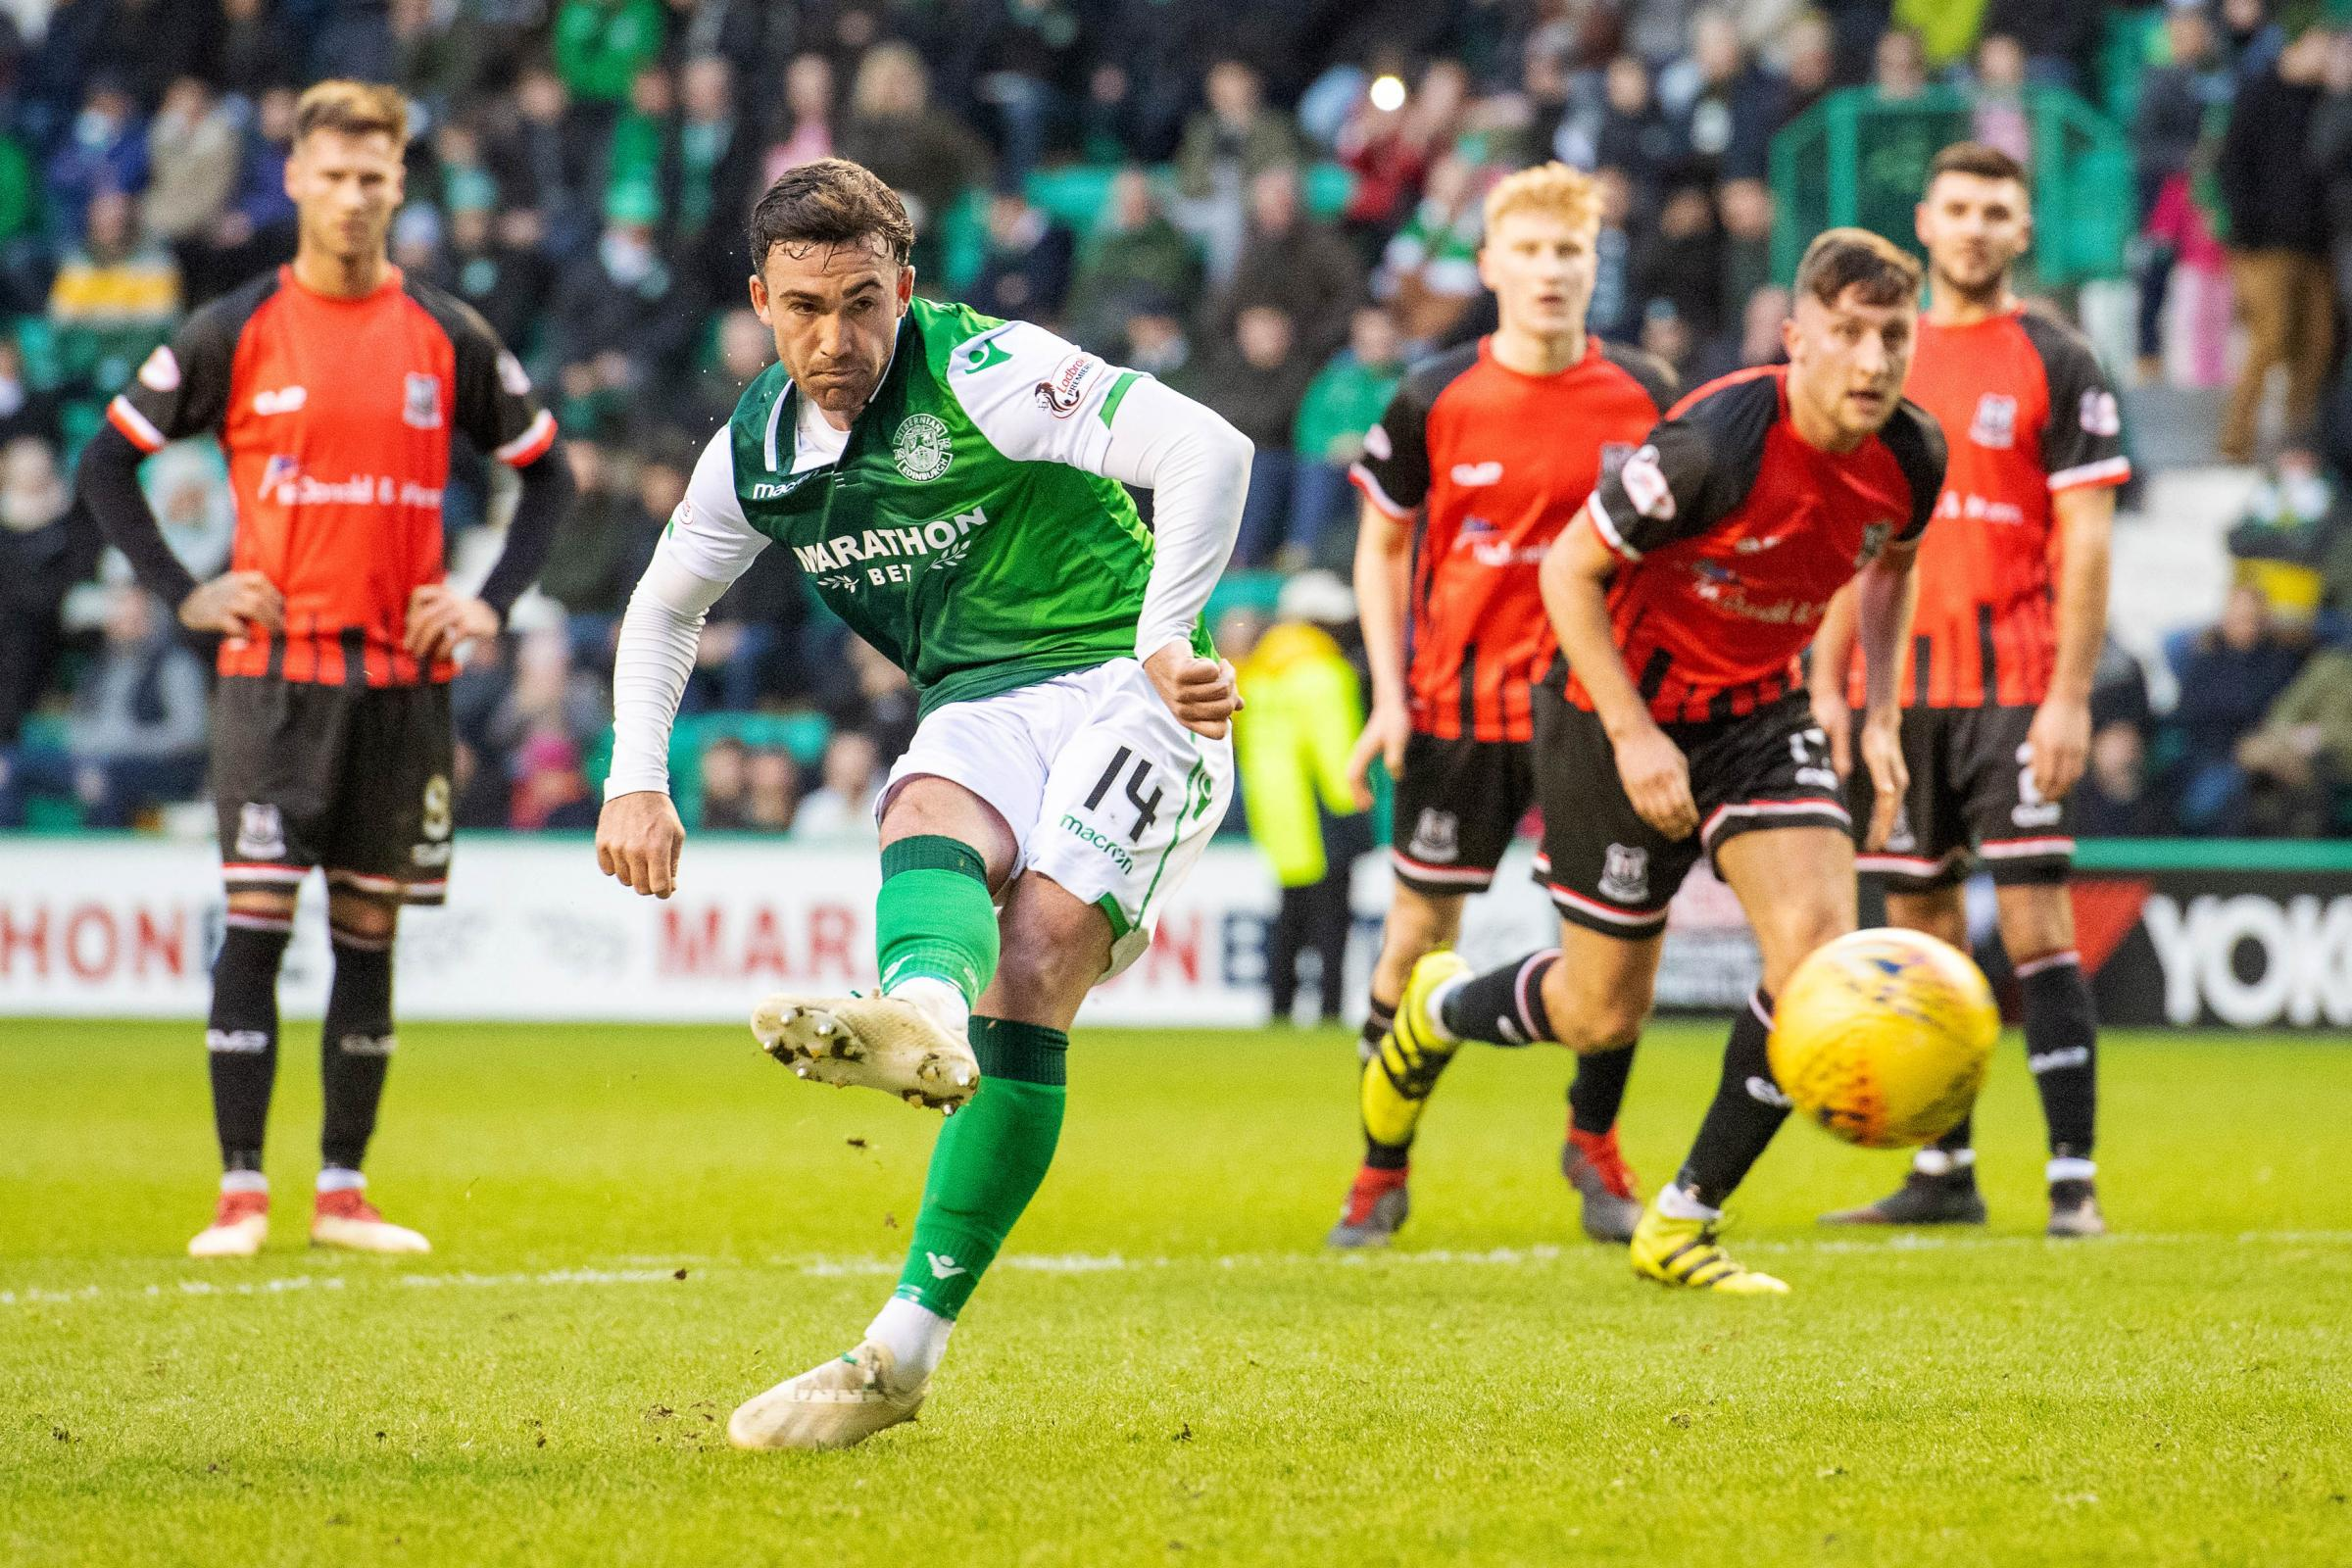 Ryan Gauld shows glimpses of good things to come as Hibs dispatch Elgin to reach last 16